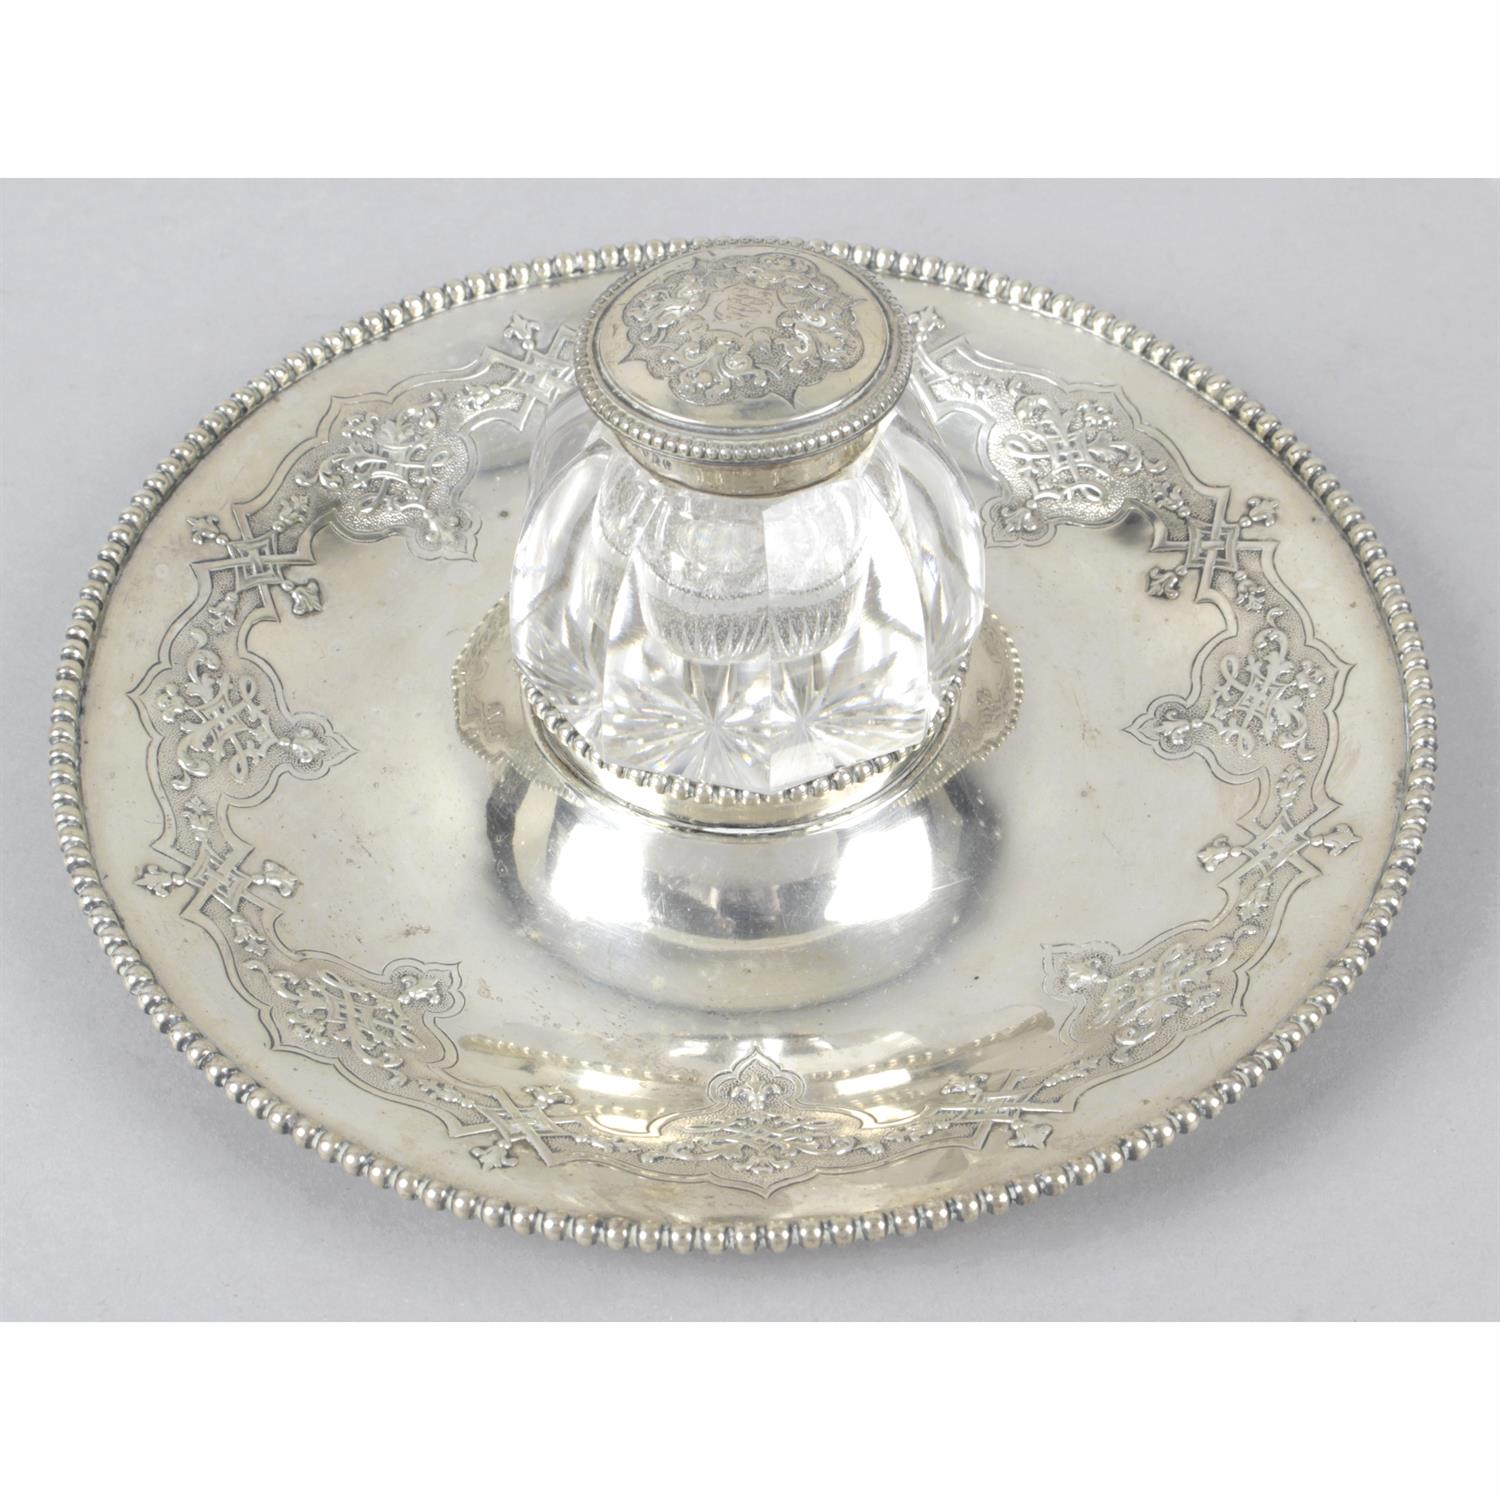 A Victorian silver inkstand with central glass ink pot.